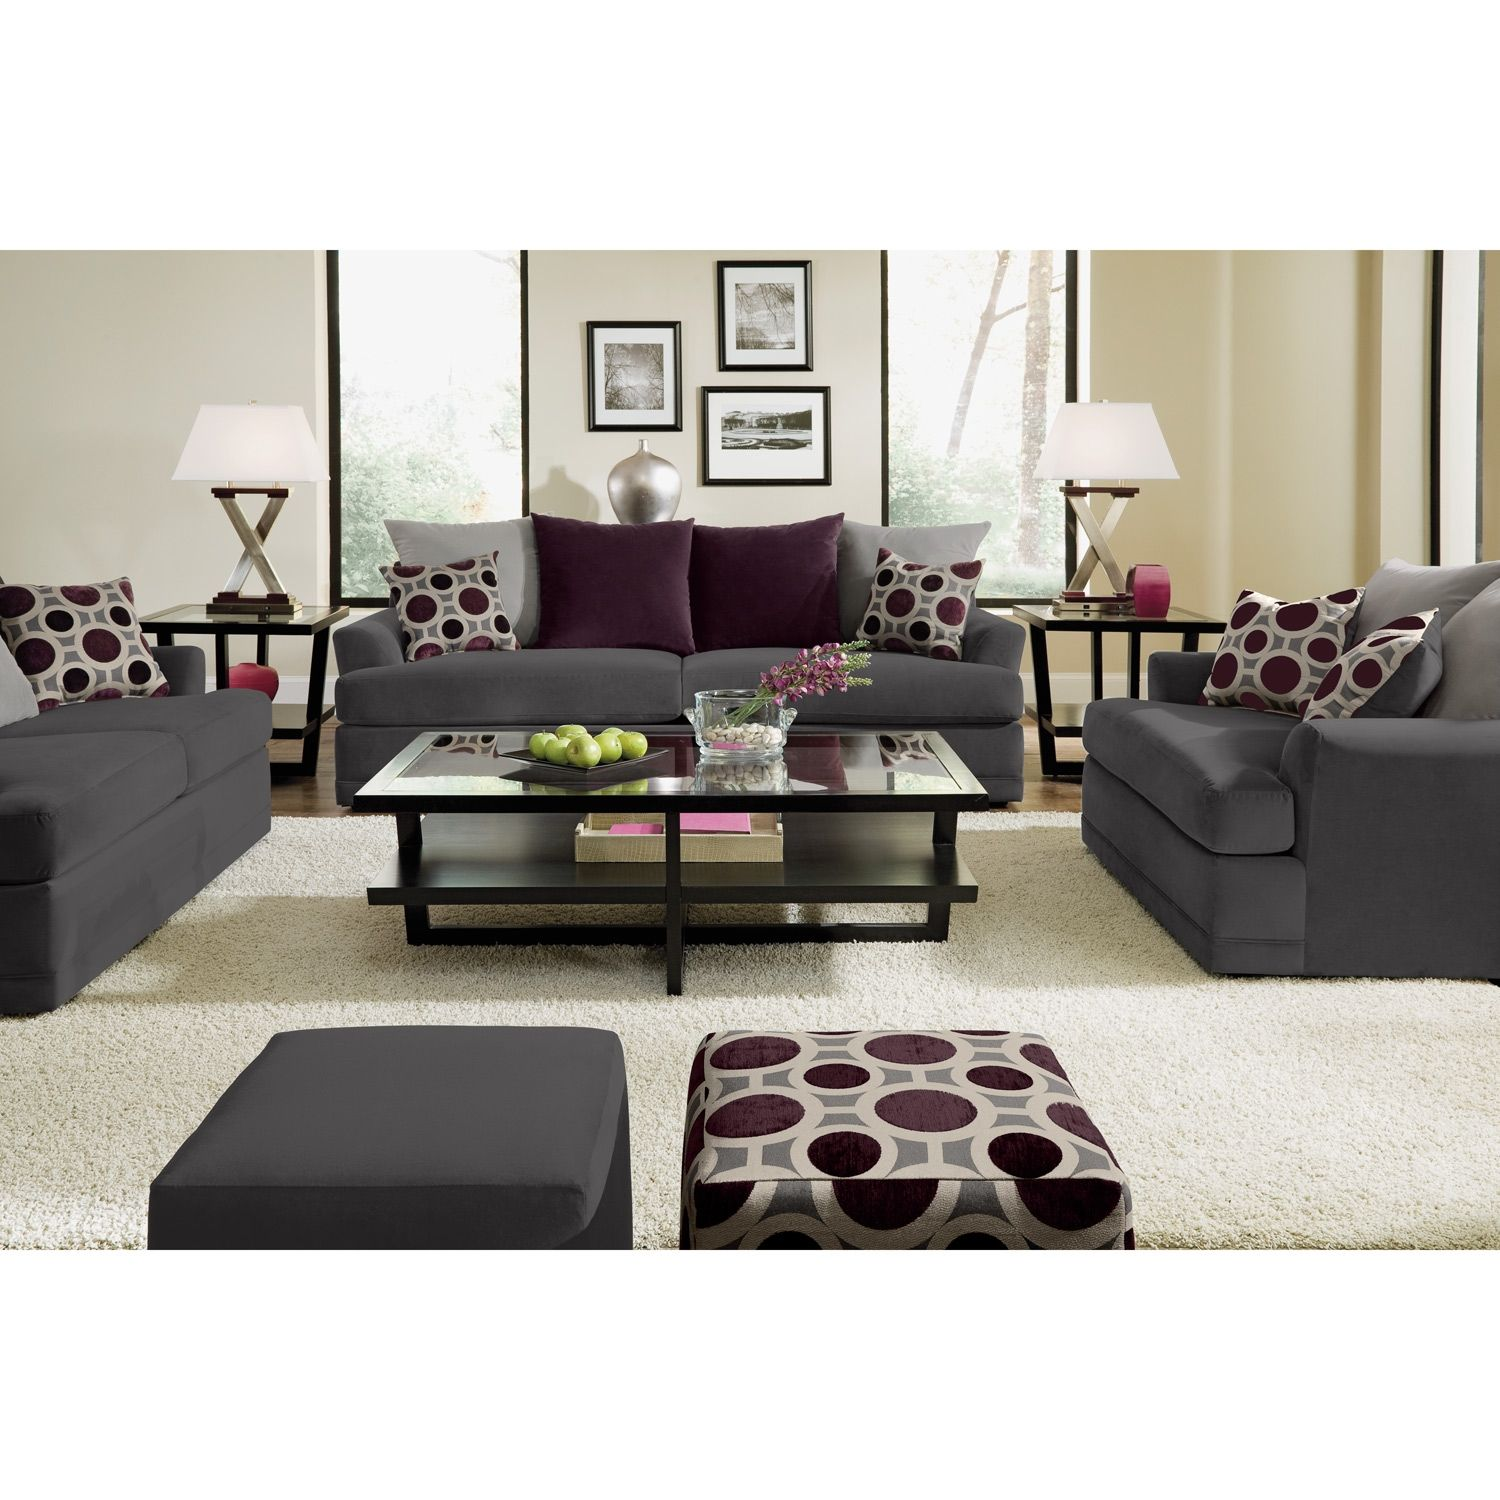 American Signature Furniture Radiance Upholstery Sofa Living - American signature sofas